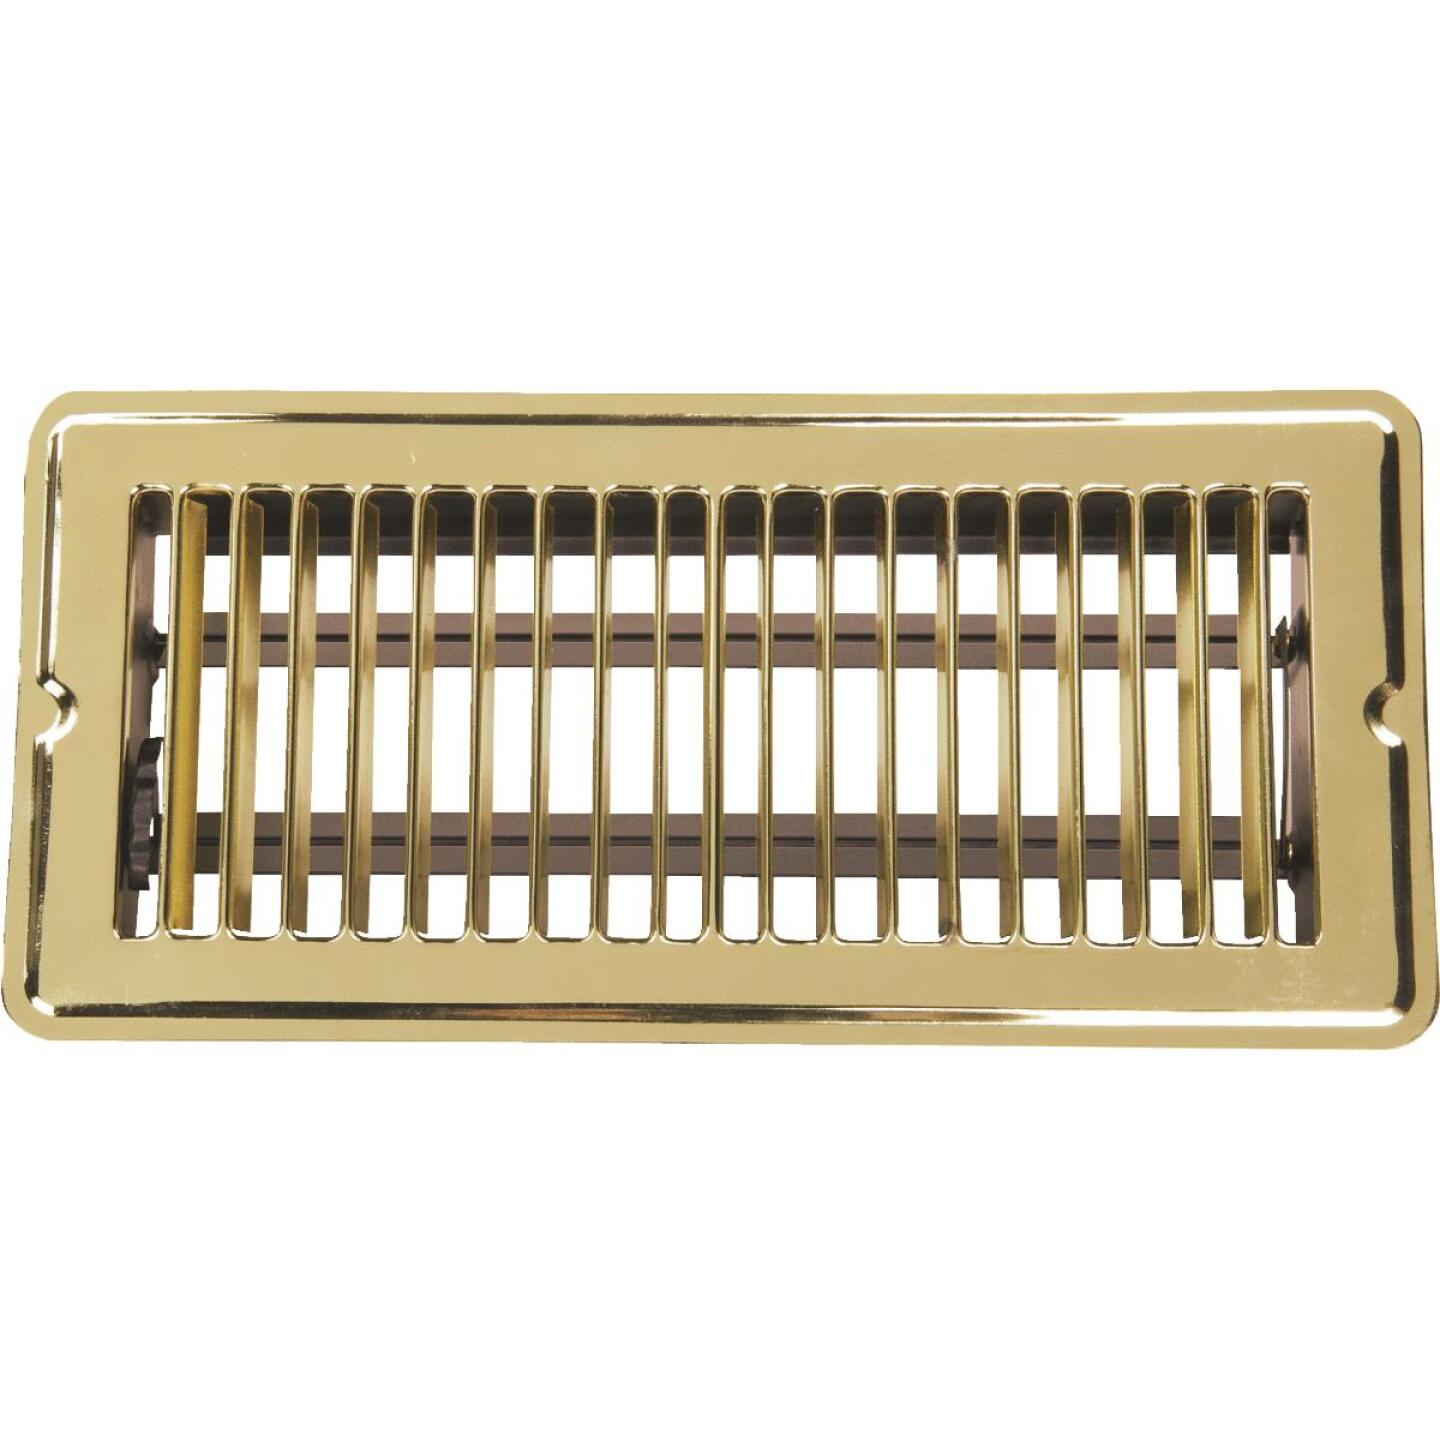 Home Impressions 4 In. x 10 In. Bright Brass Steel Floor Register Image 1